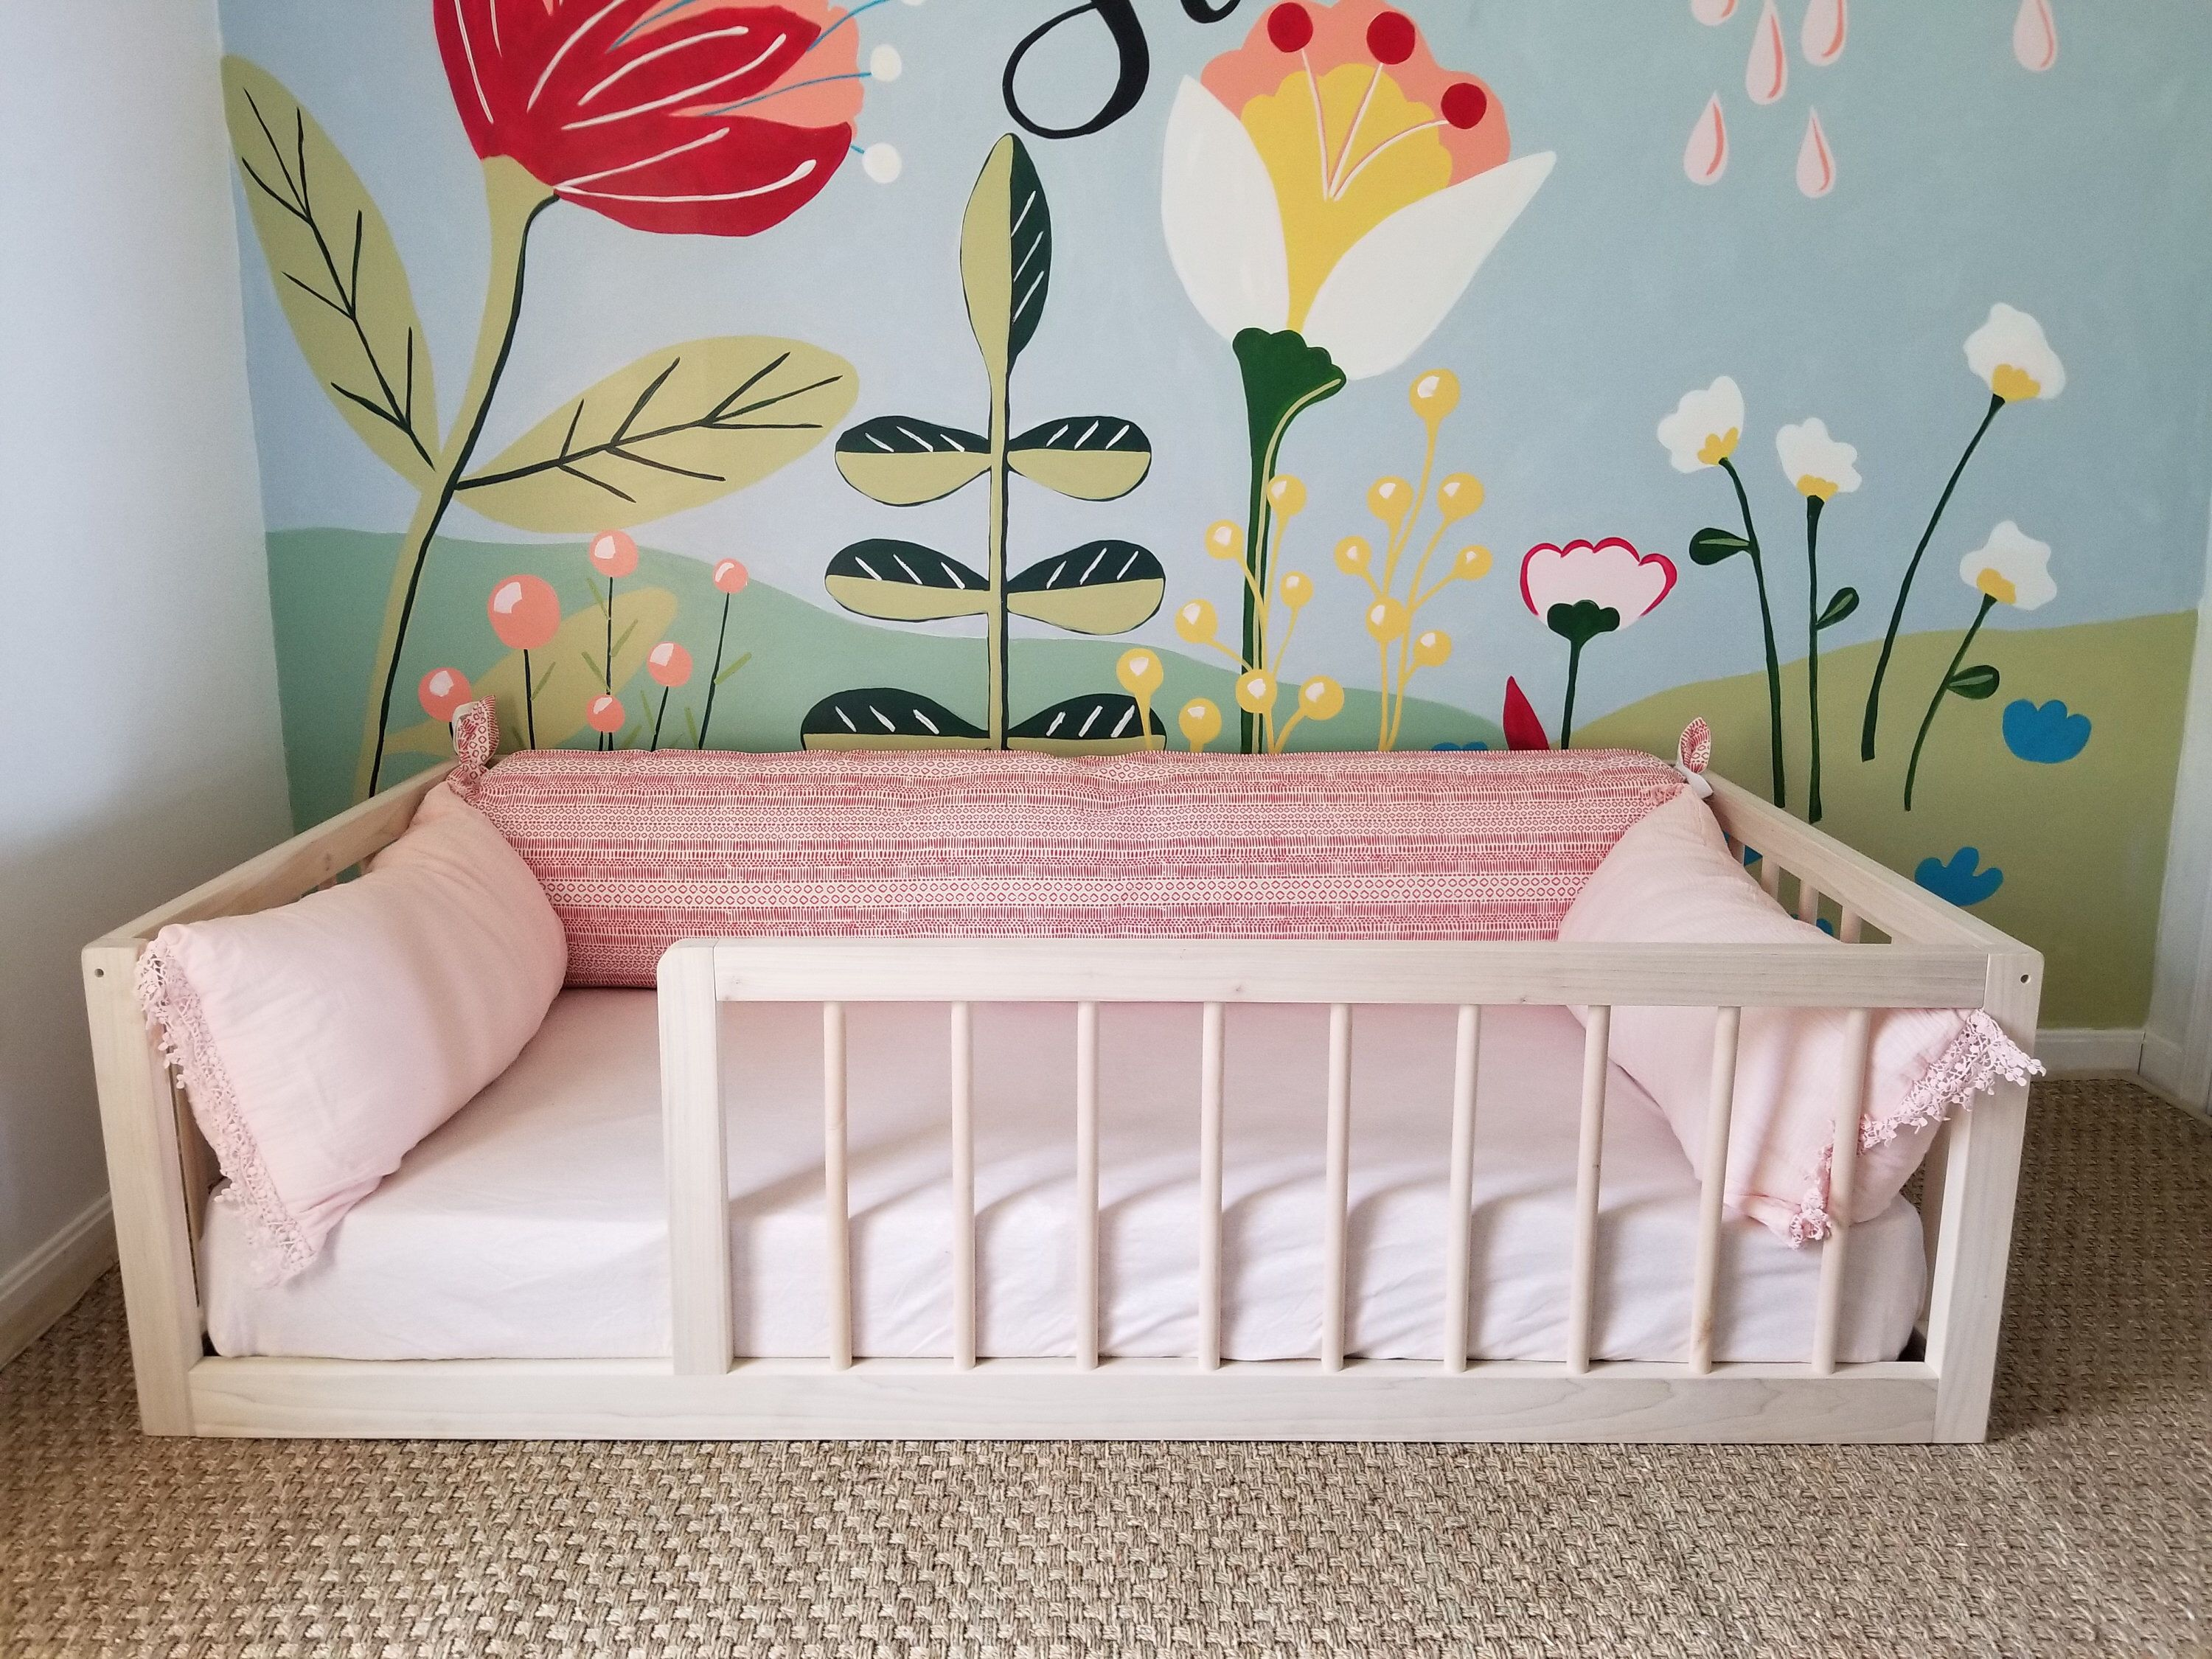 Amelia S Room Toddler Bedroom: Pin Od Kori Kids Na Kids Room